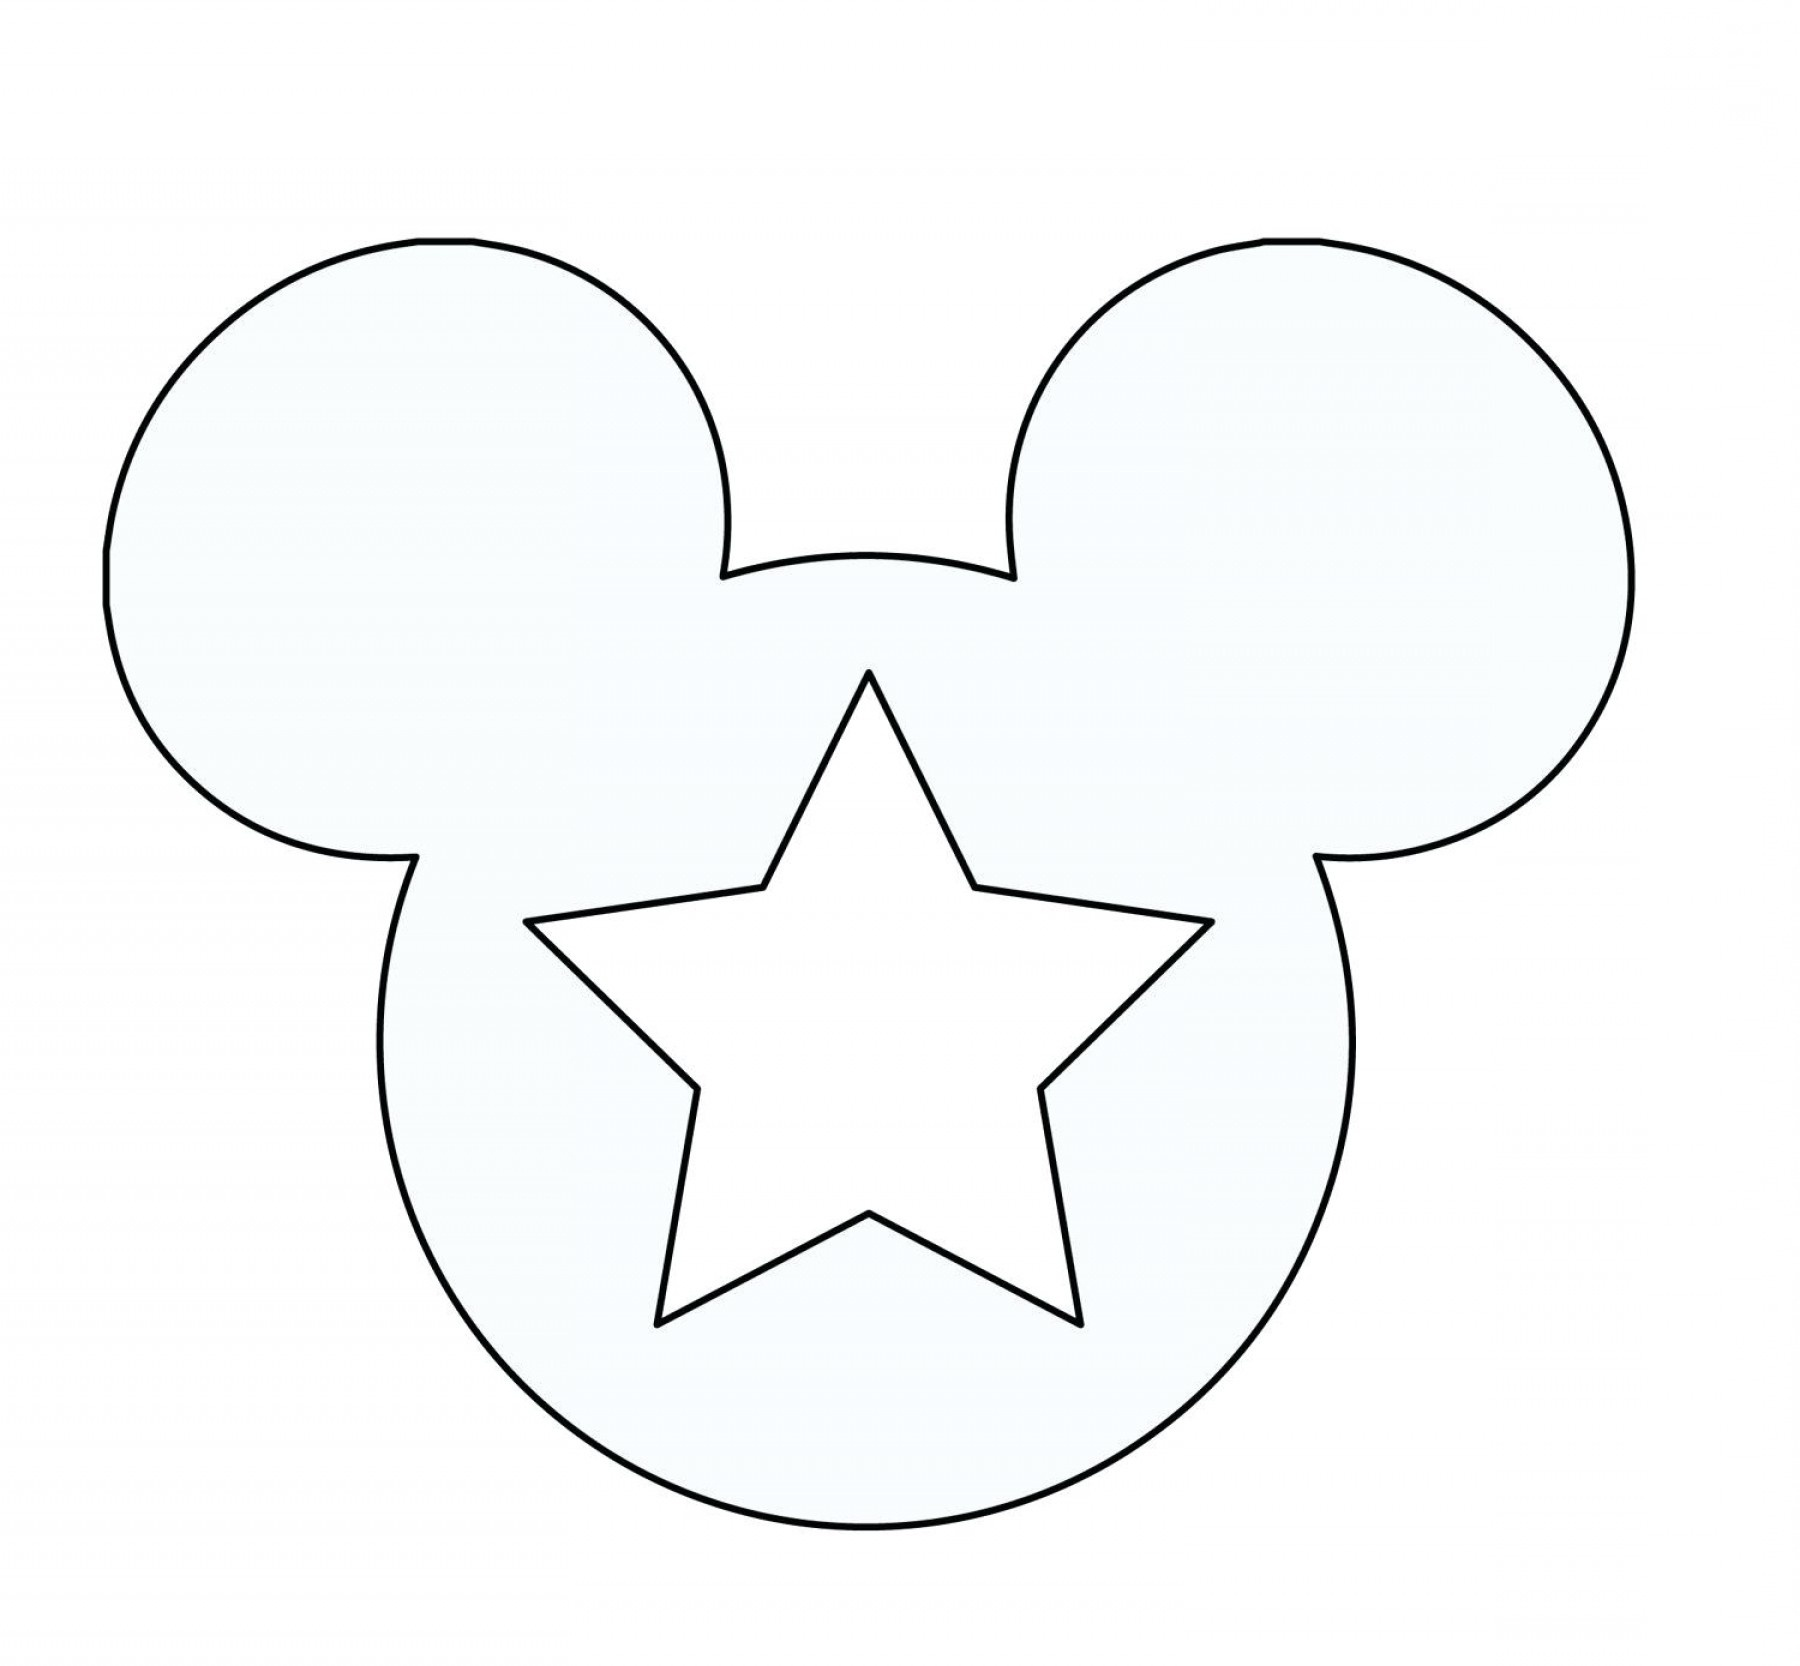 Mickey Mouse Ears Printable Coloring Pages Ghost Free Outline Large - Free Printable Minnie Mouse Ears Template